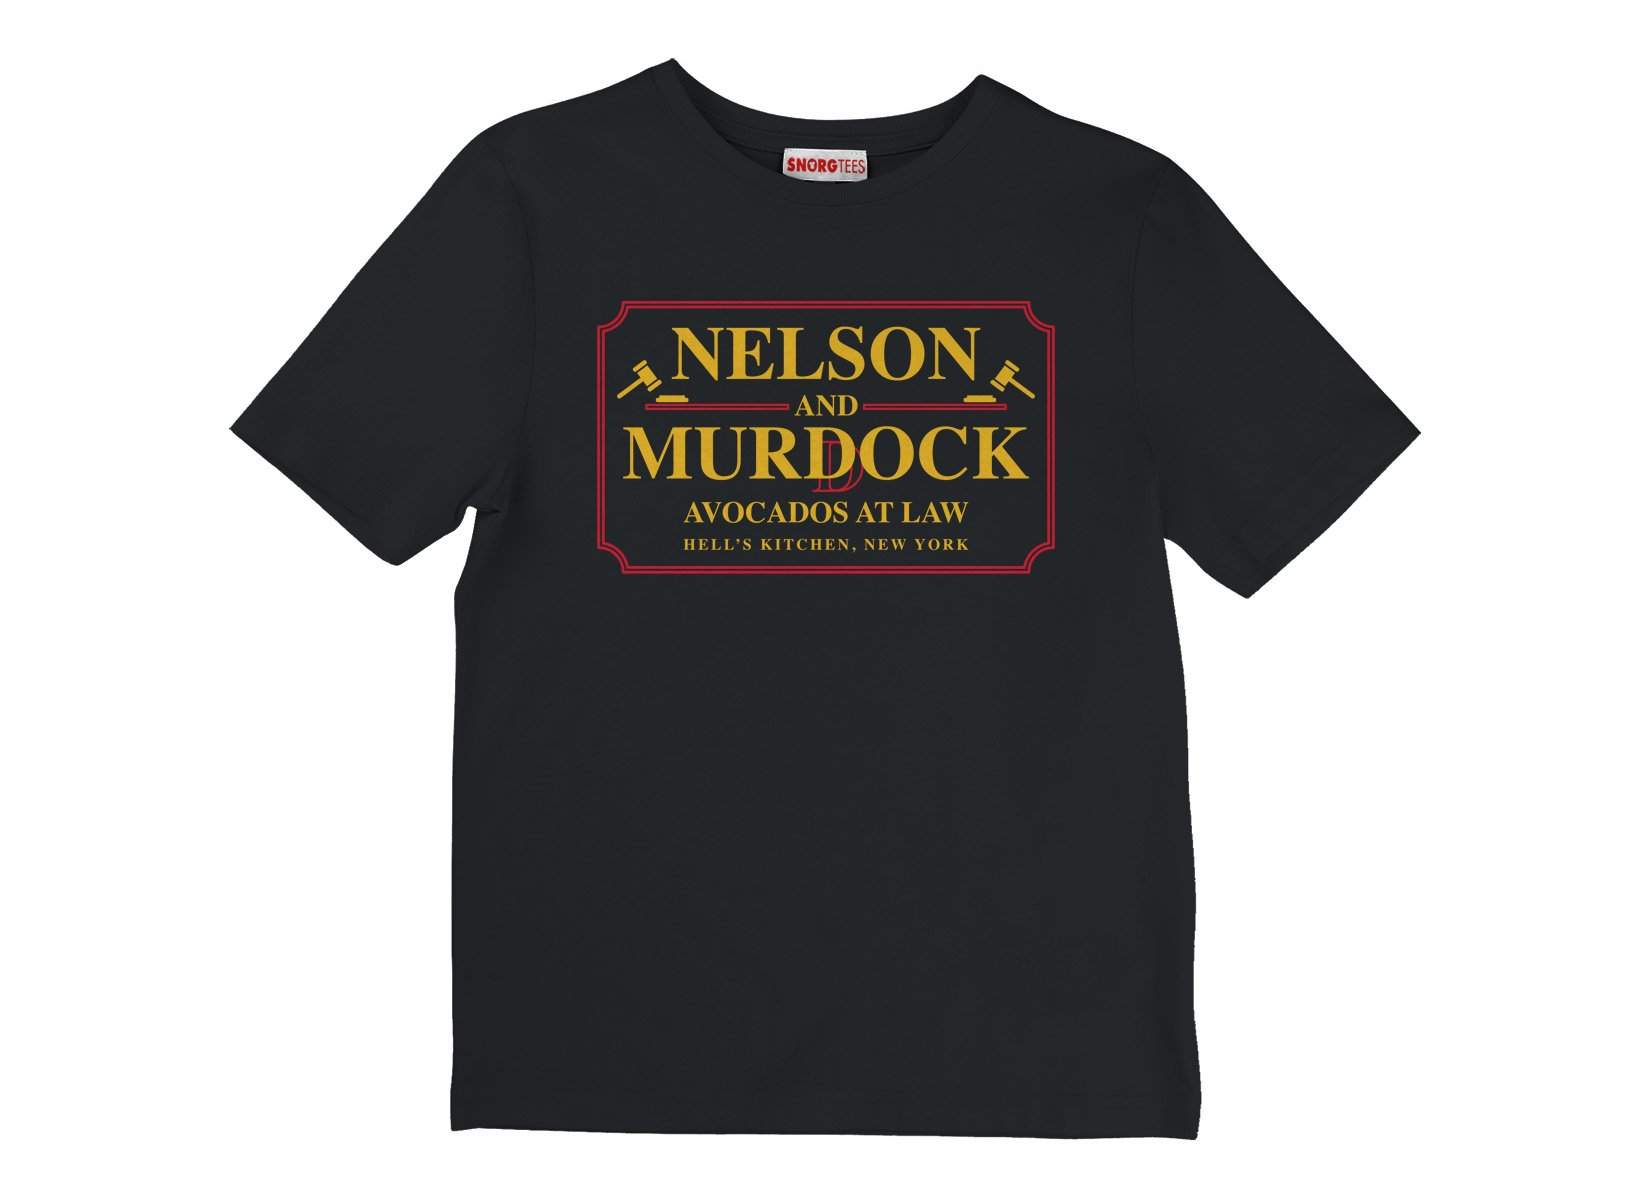 Nelson And Murdock on Kids T-Shirt